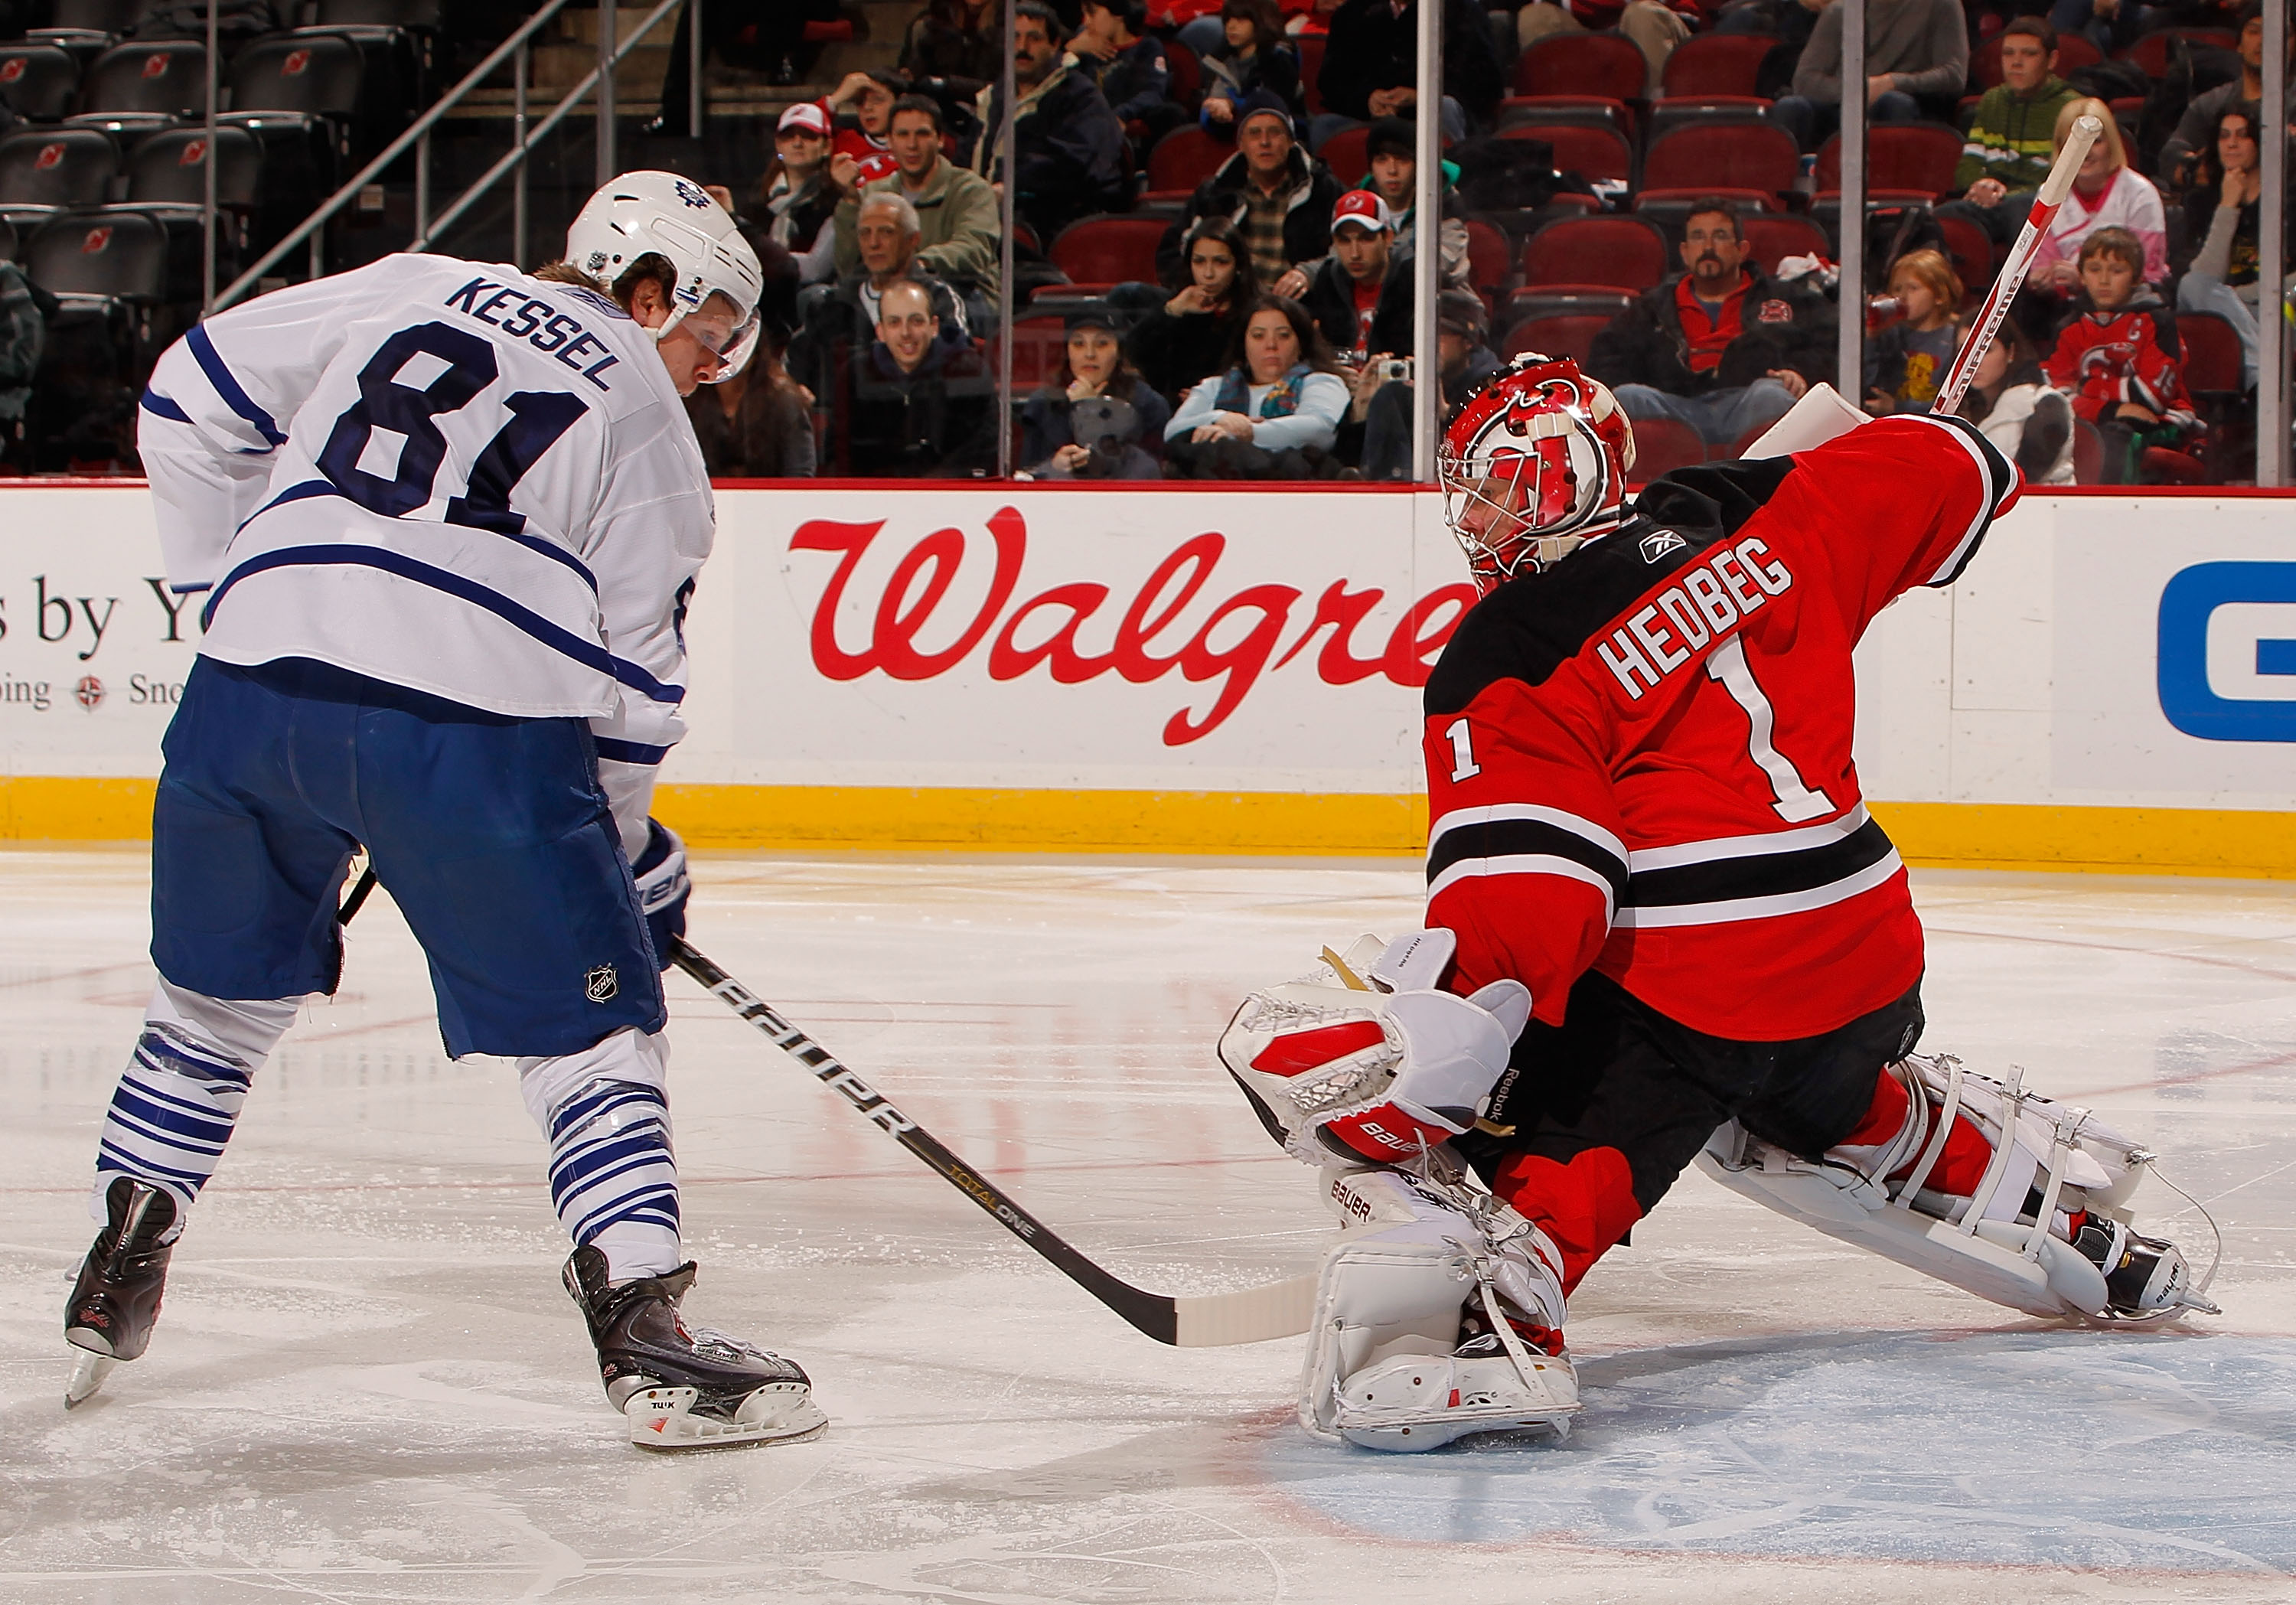 NEWARK, NJ - DECEMBER 26:  Phil Kessel #81 of the Toronto Maple Leafs is stopped on this tip in attempt by Johan Hedberg #1 of the New Jersey Devils in the third period of an NHL hockey game at the Prudential Center on December 26, 2010 in Newark, New Jer